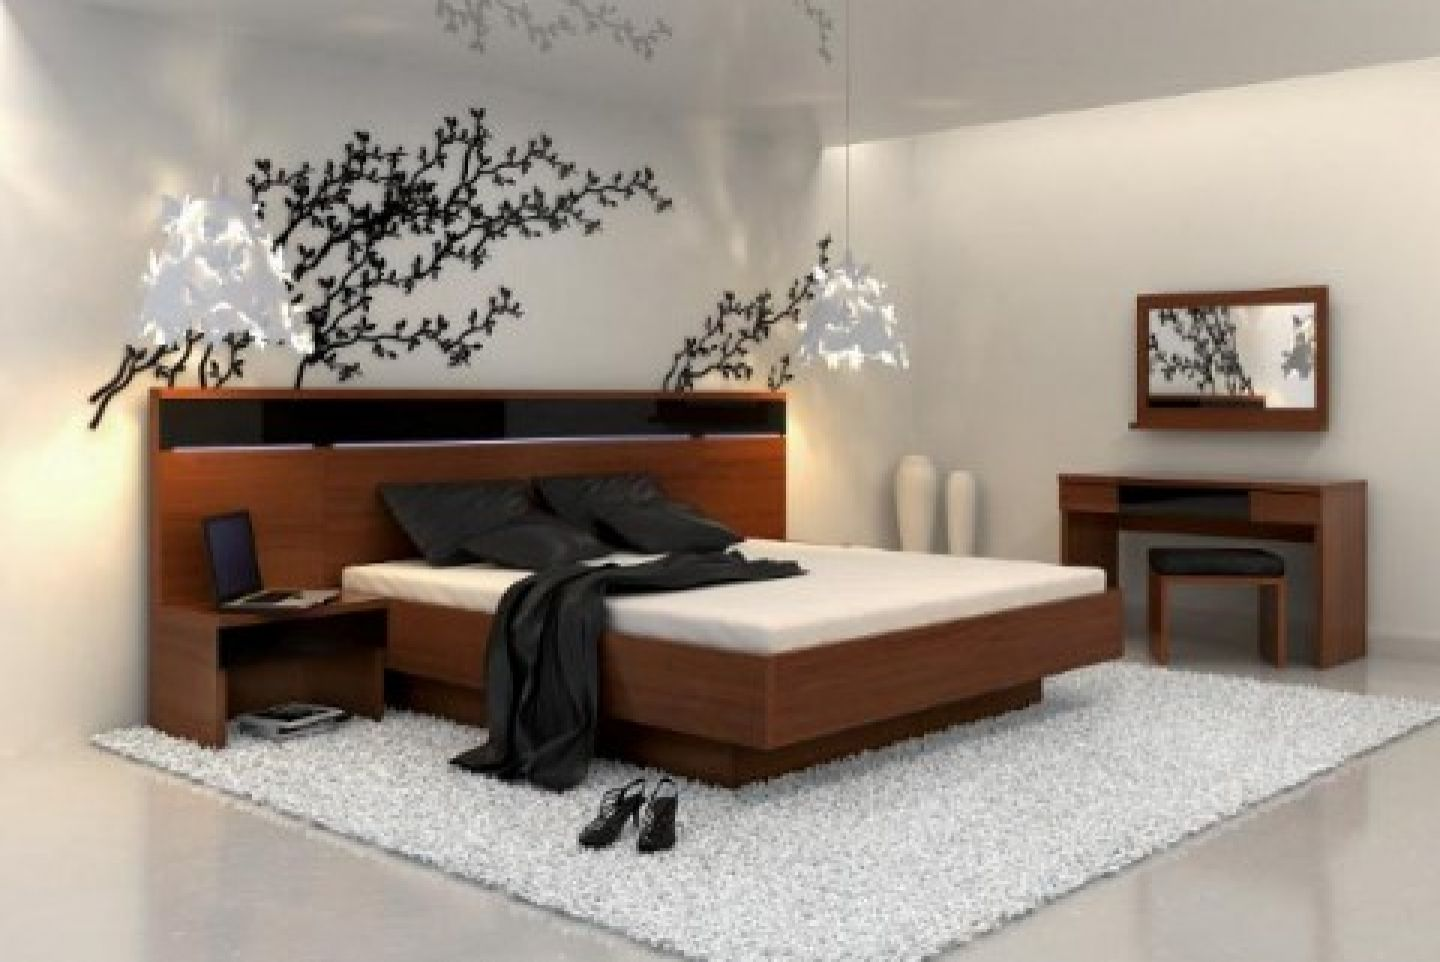 Japanese Room Design Ideas Part - 22: Unique Modern Japanese Bedroom Ideas With Japanese Interior Design Peace  And Harmony Japanese Modern Bedroom